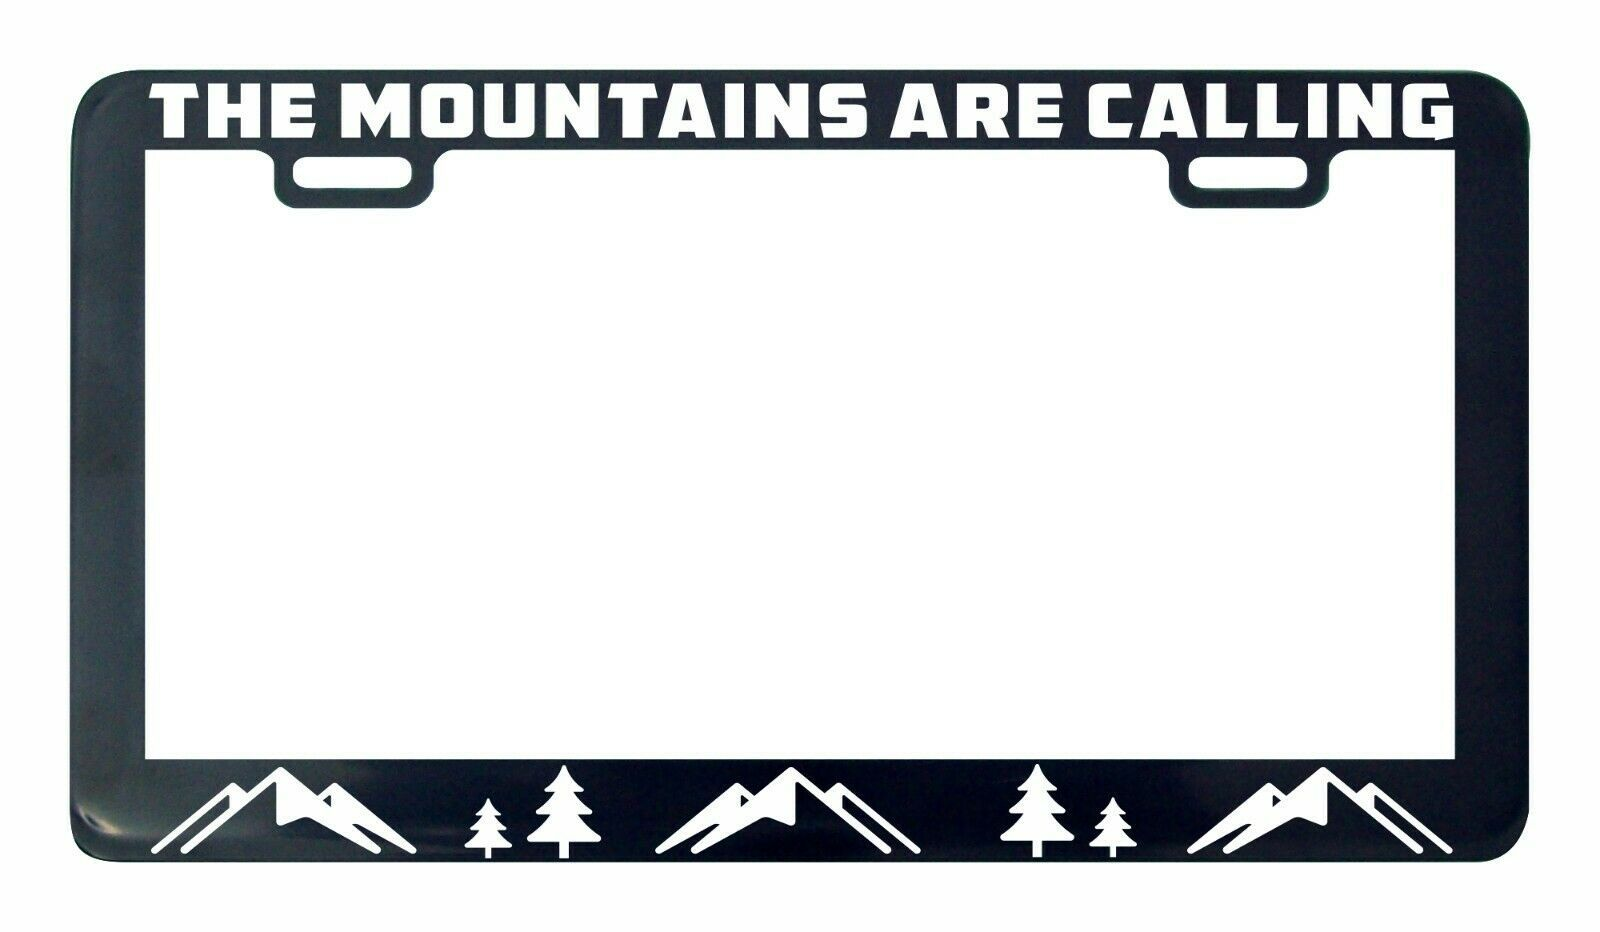 Primary image for The mountains are calling Adventure Awaits license plate frame holder tag